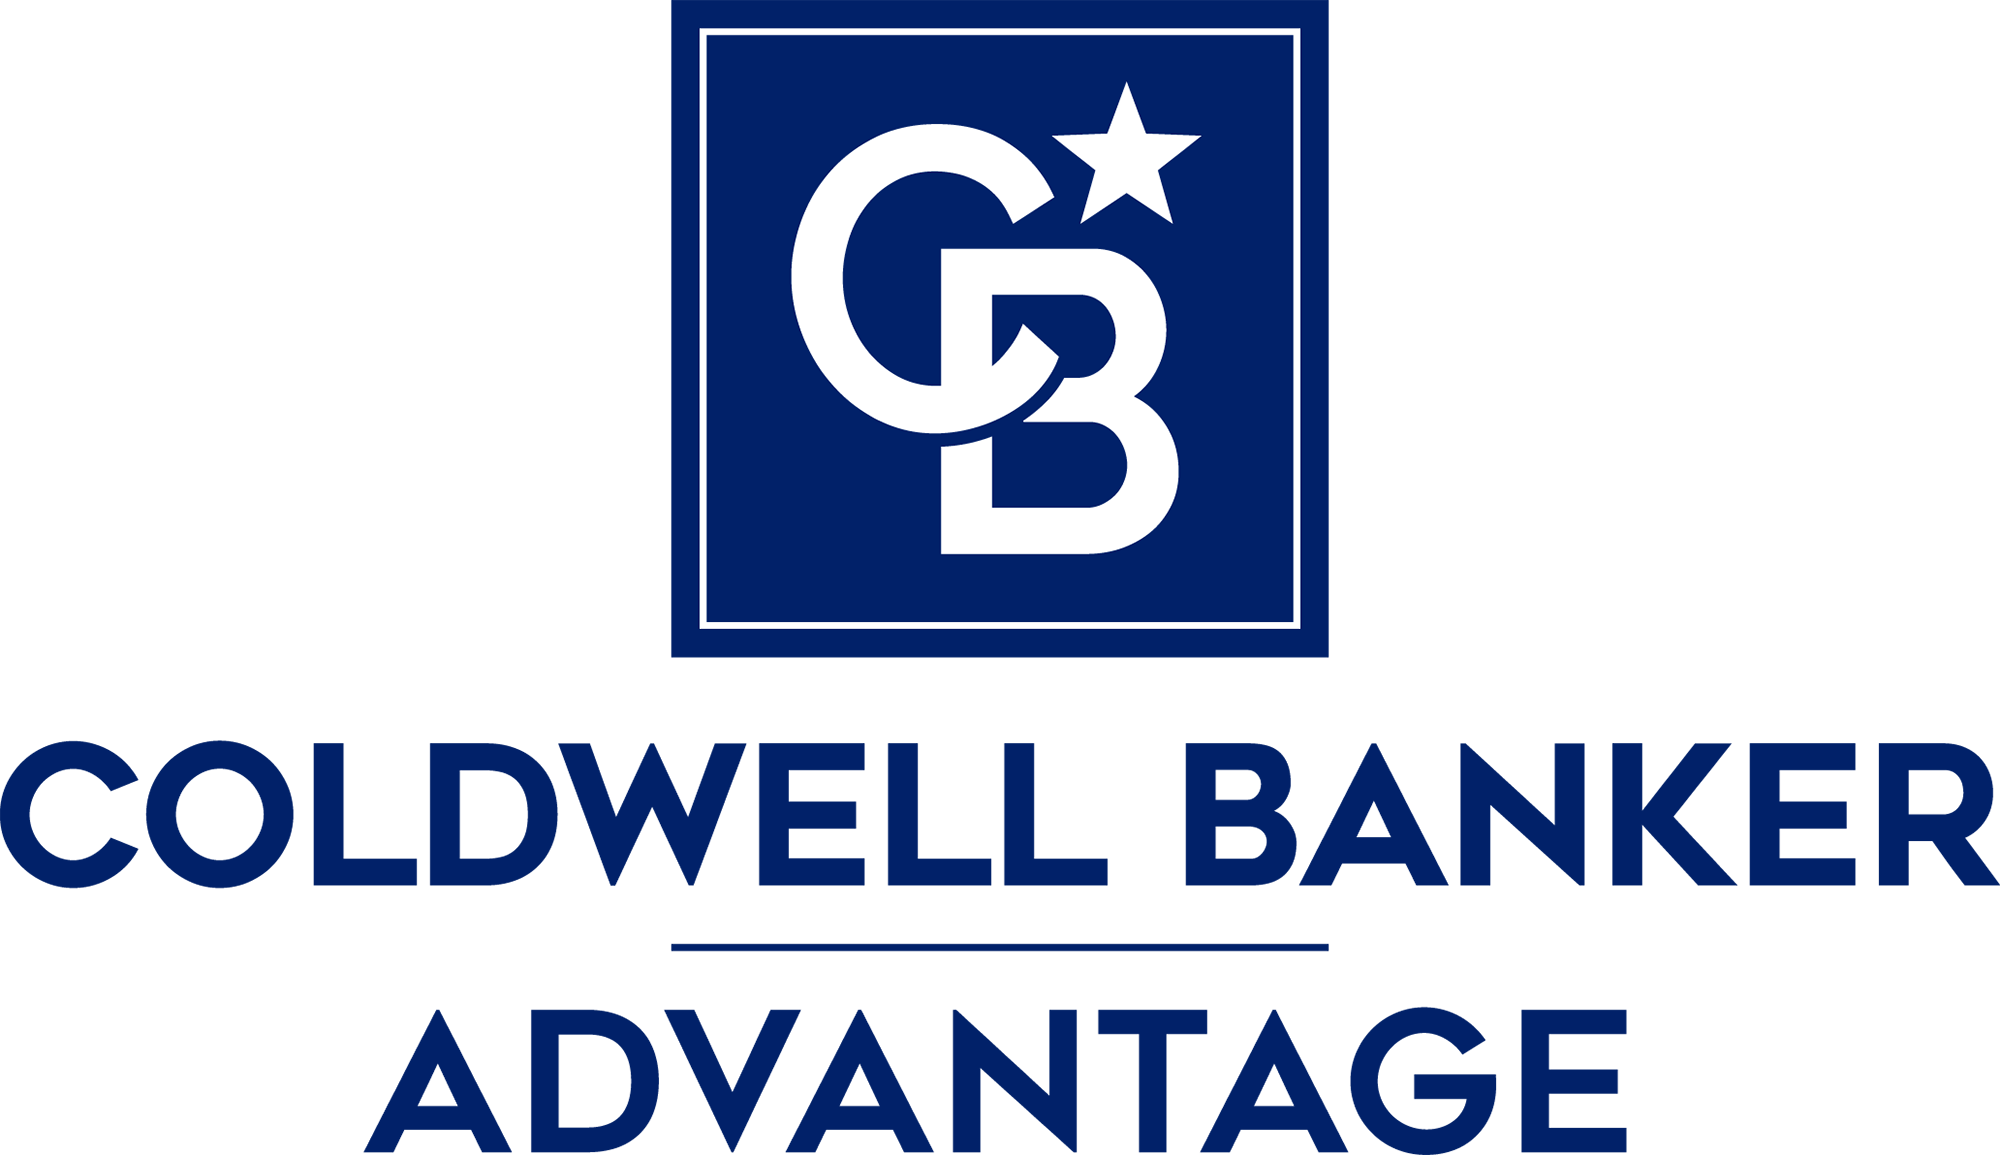 Glen Doki - Coldwell Banker Advantage Logo